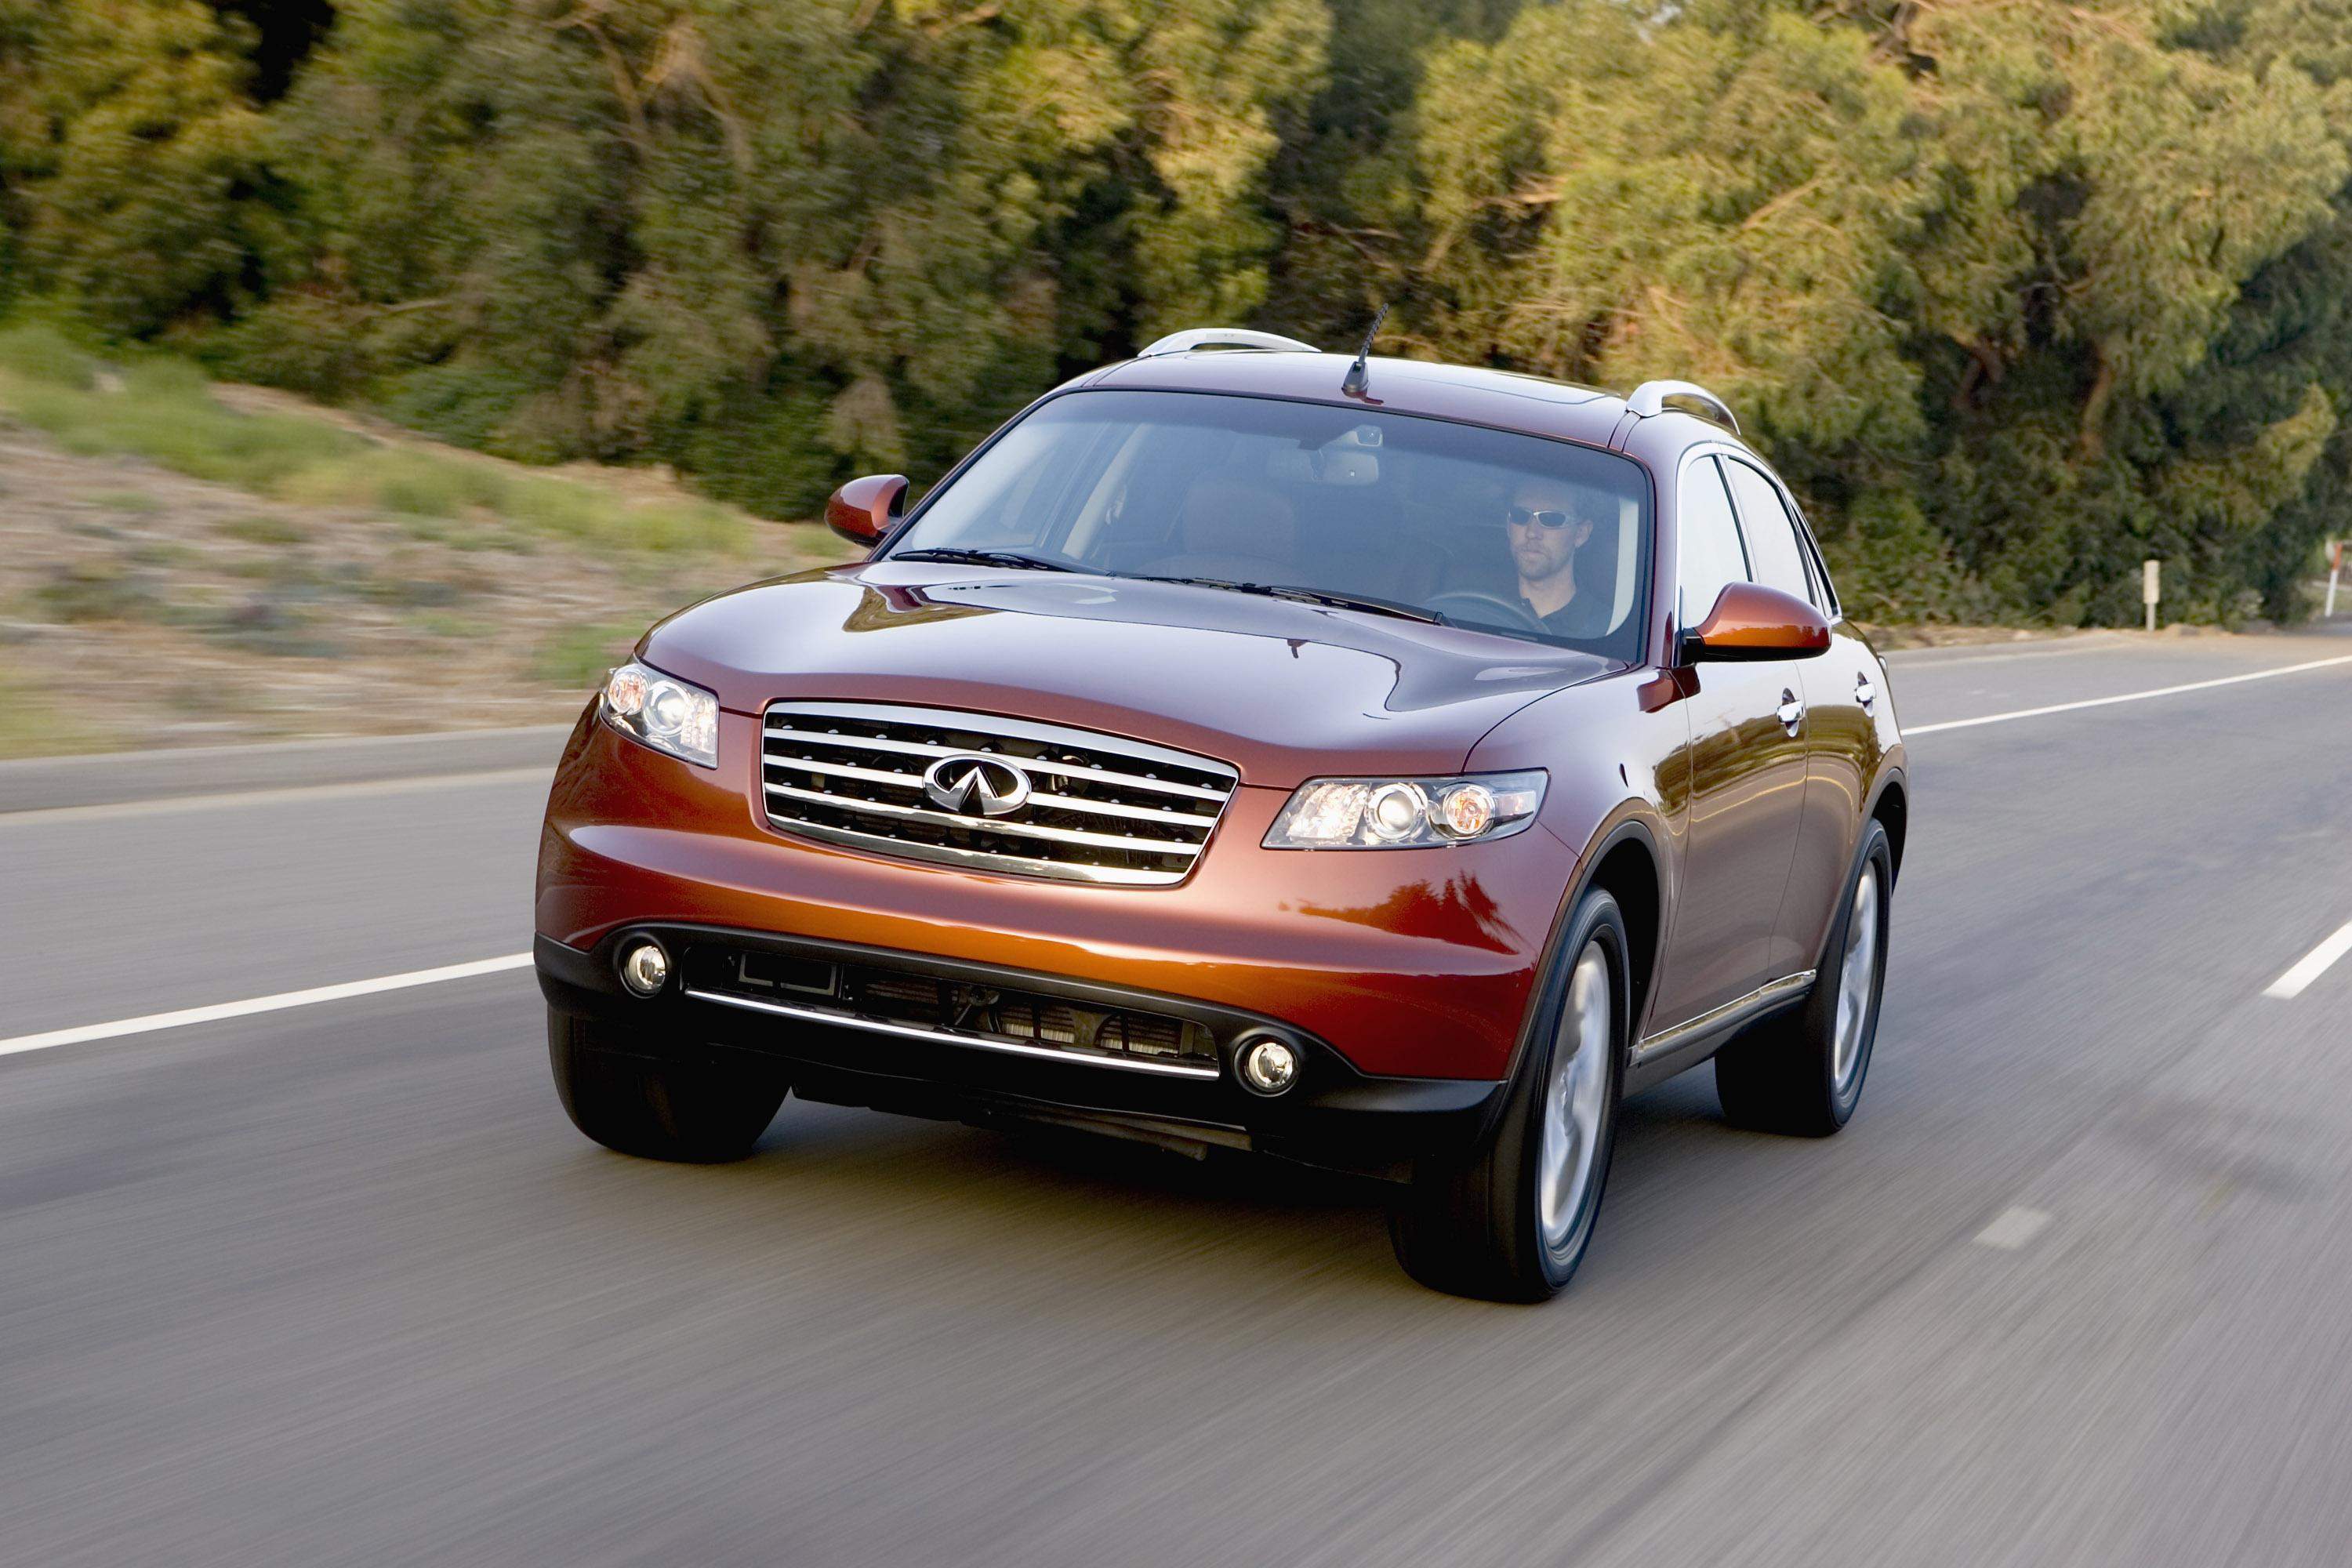 listings all about fx infinity full cars infiniti mazda for sale